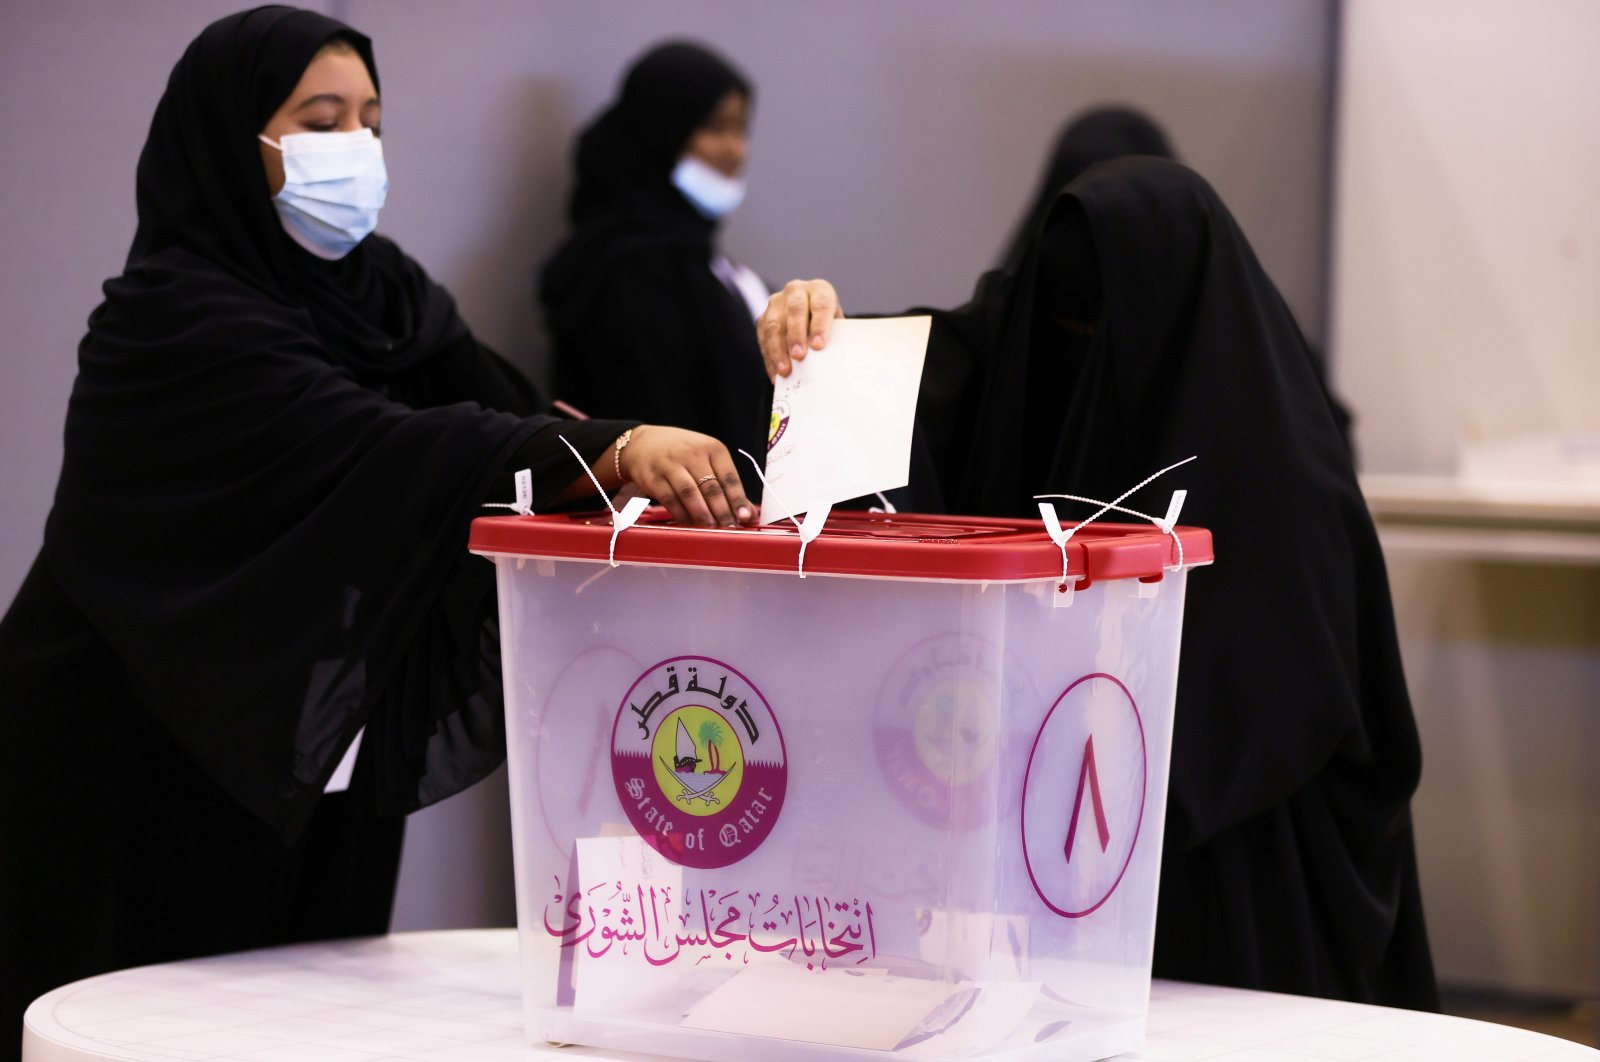 Voters cast their ballot in the Gulf Arab state's first legislative elections for two-thirds of the advisory Shura Council, Doha, Qatar Oct. 2, 2021. (Reuters Photo)